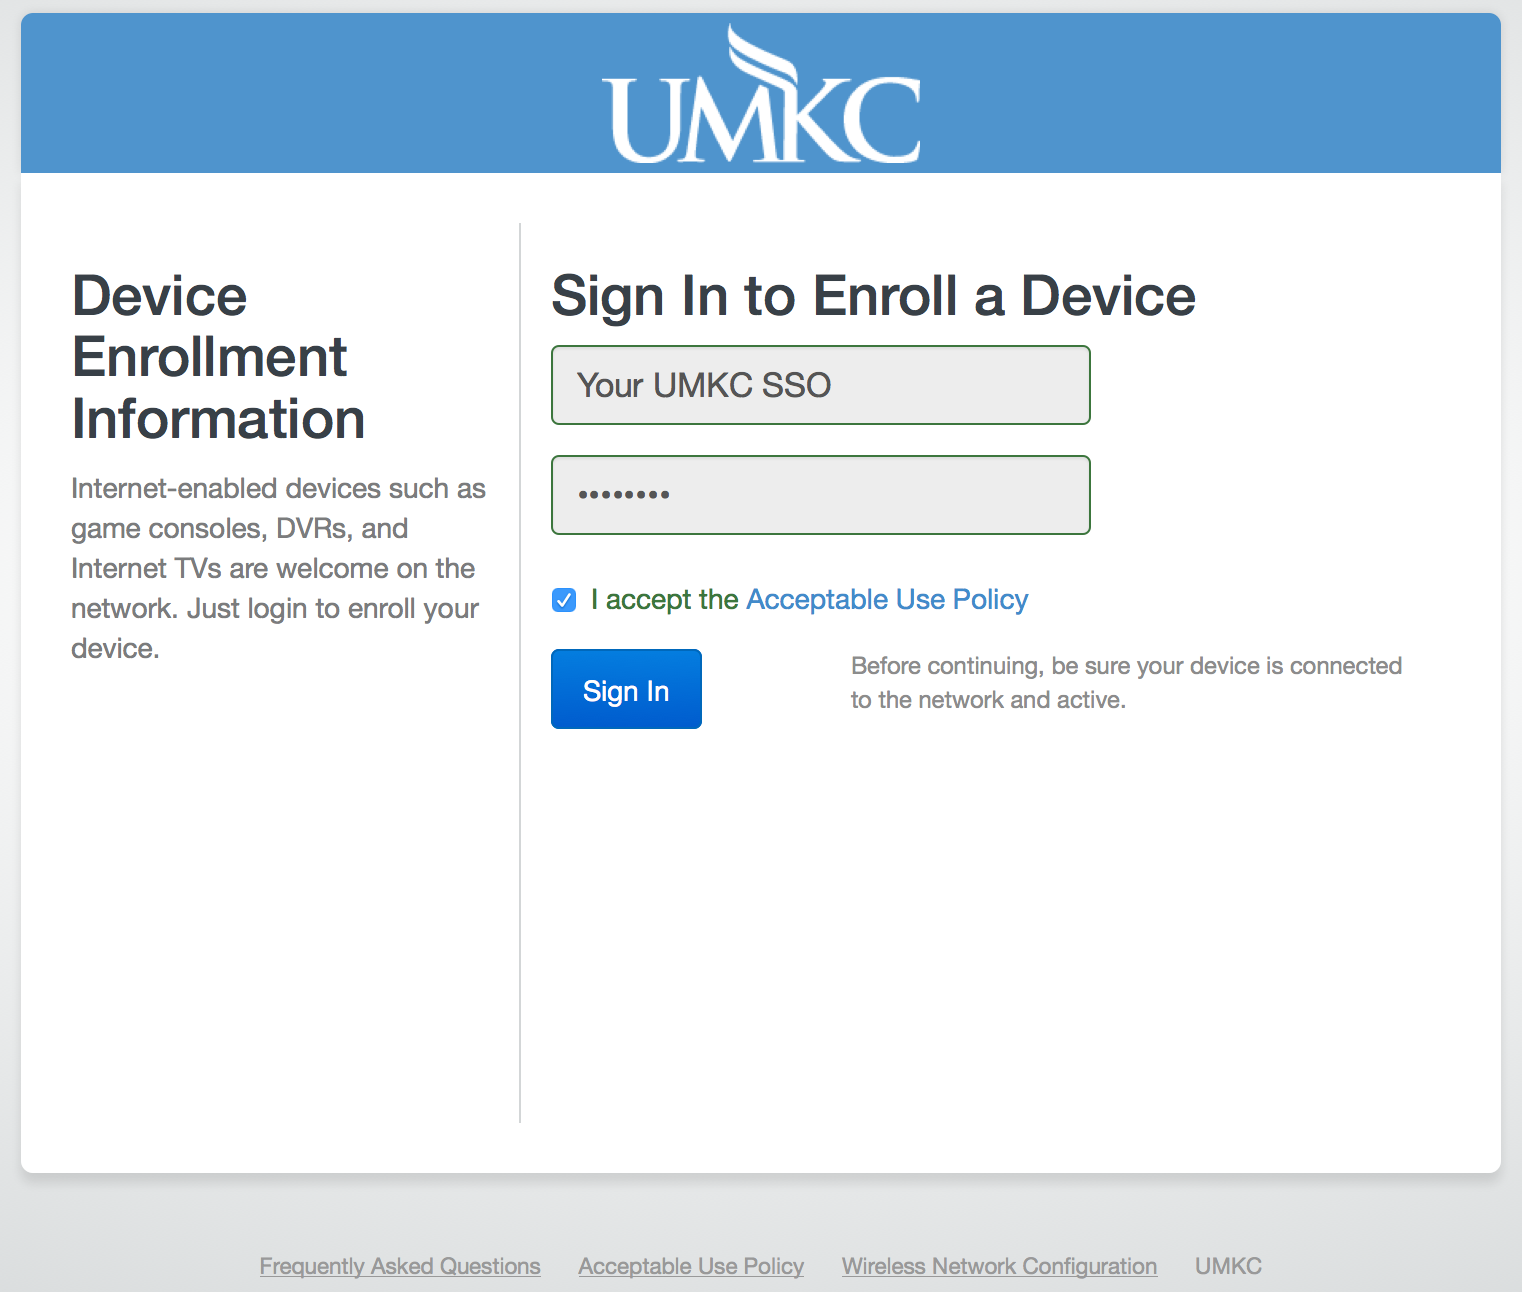 UMKC-Media wireless network for gaming and media devices